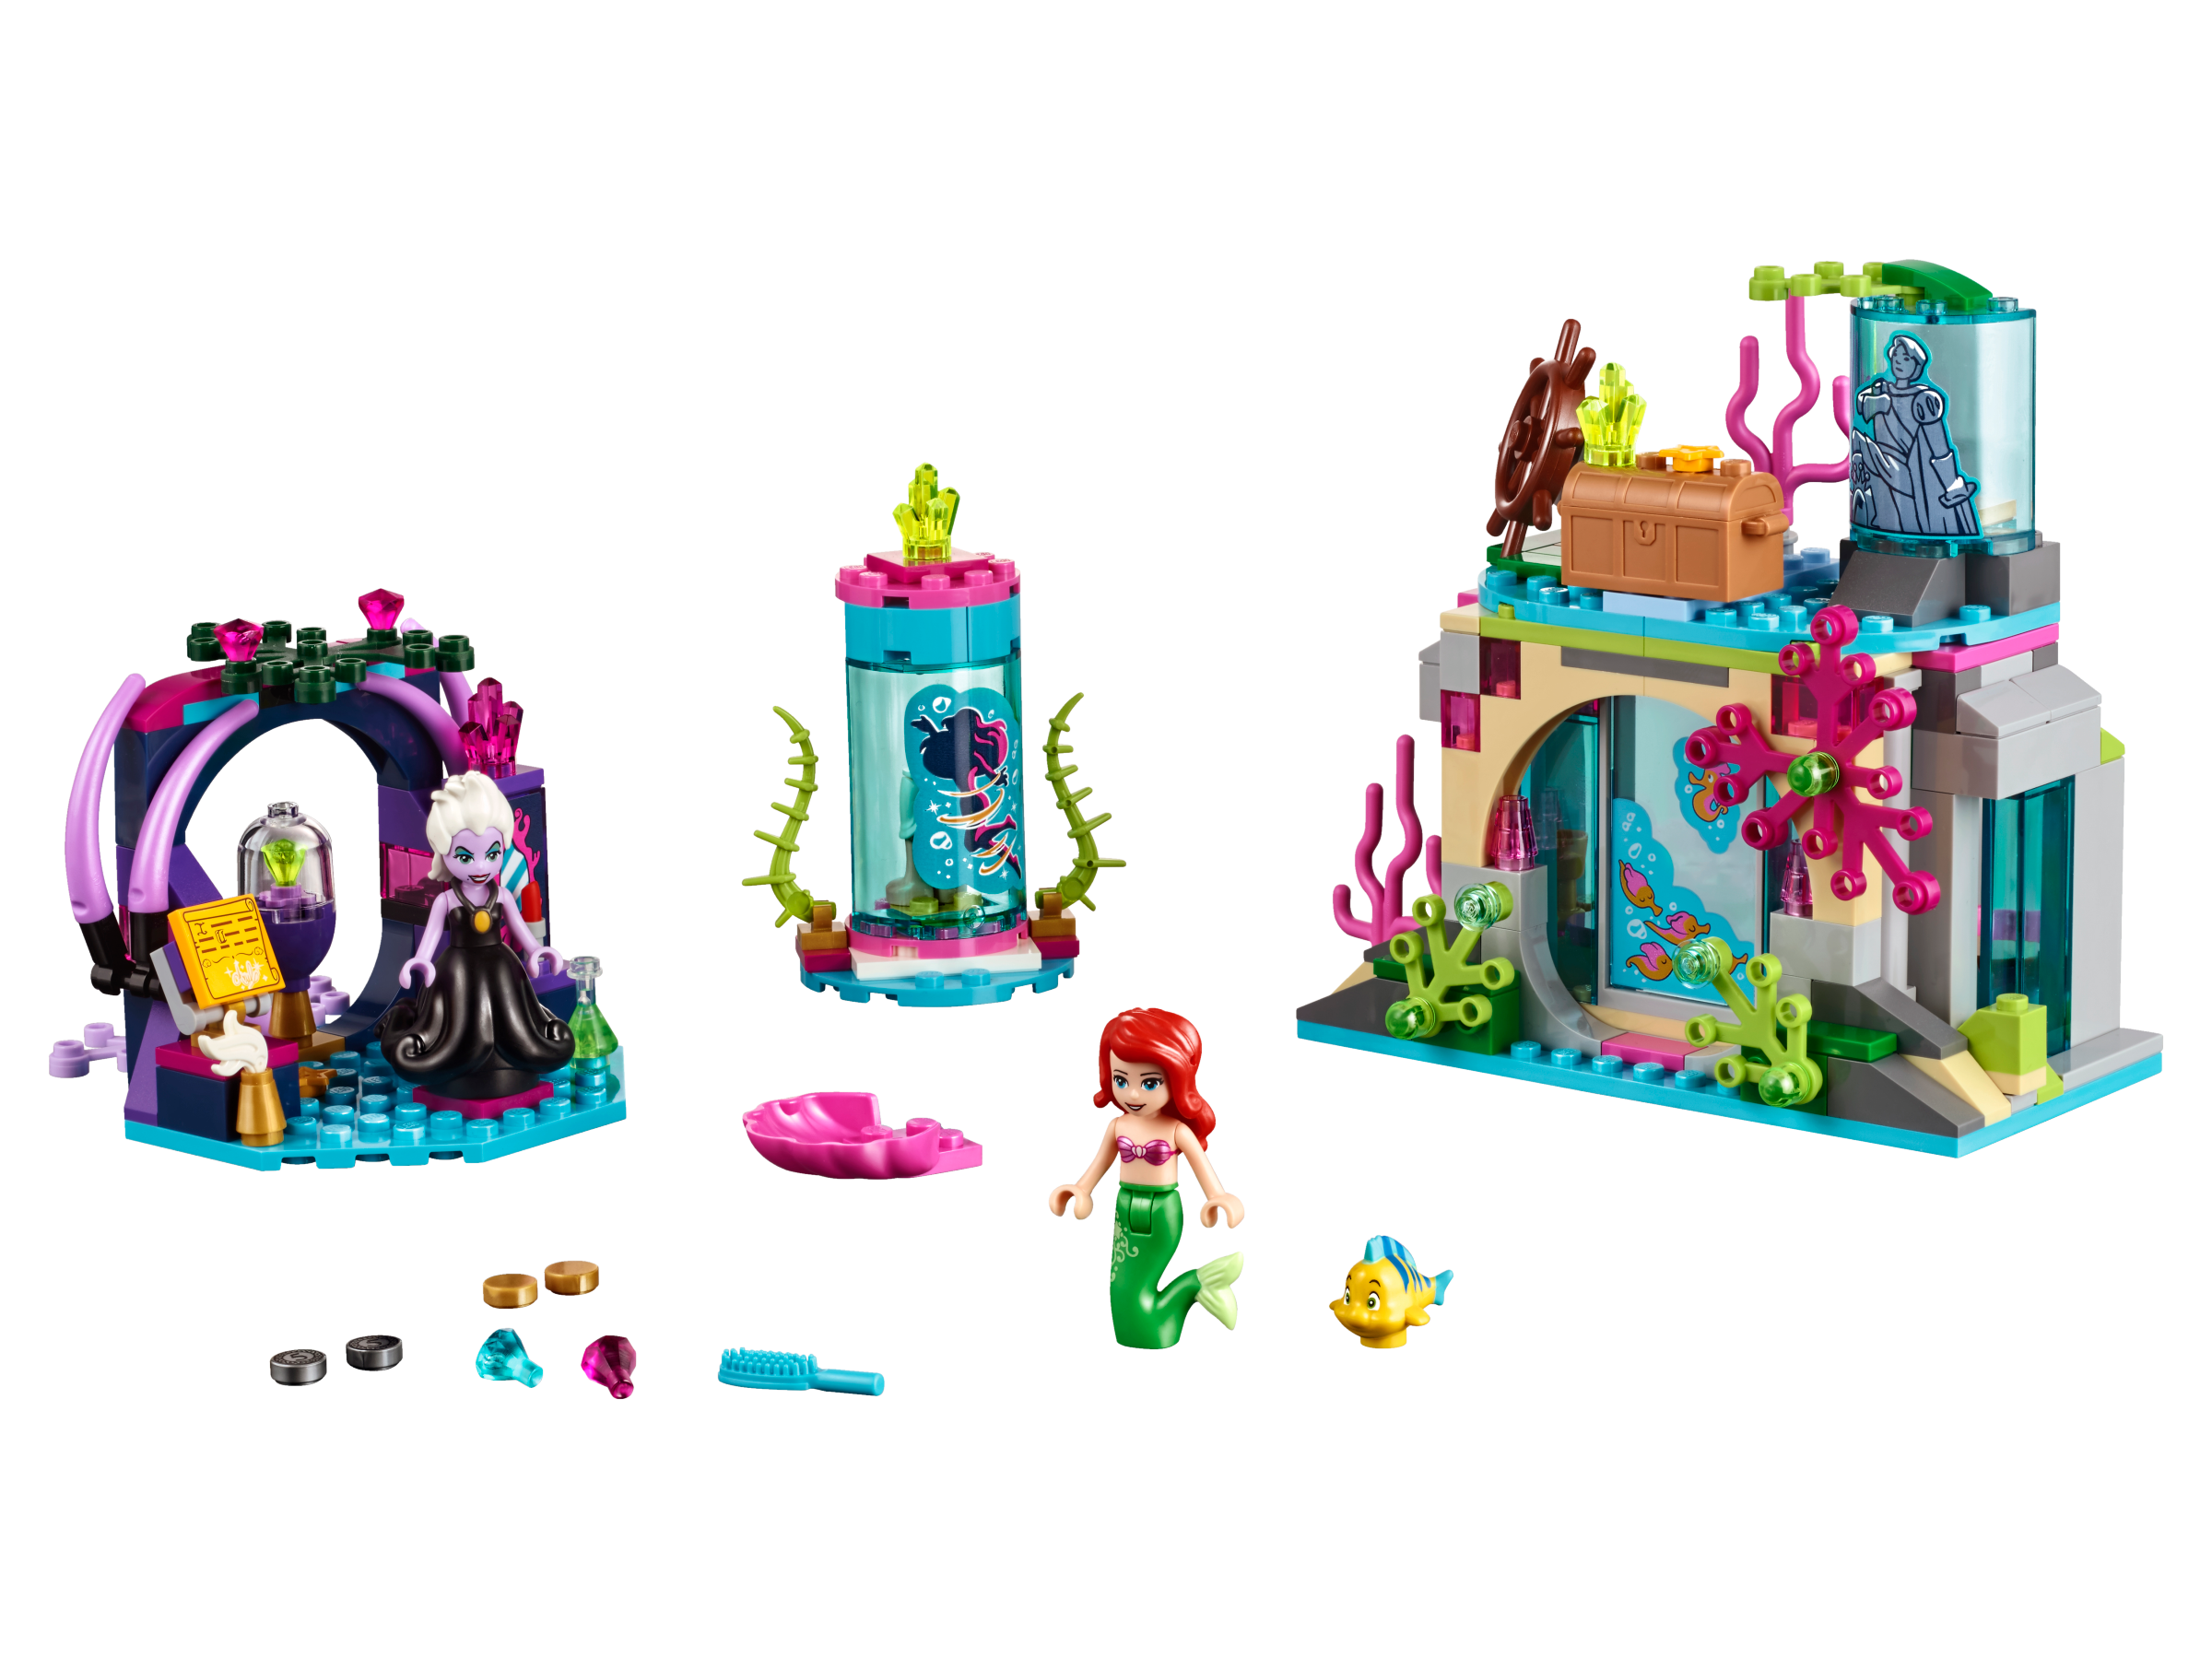 Ariel and the magic. Palace clipart castle lego